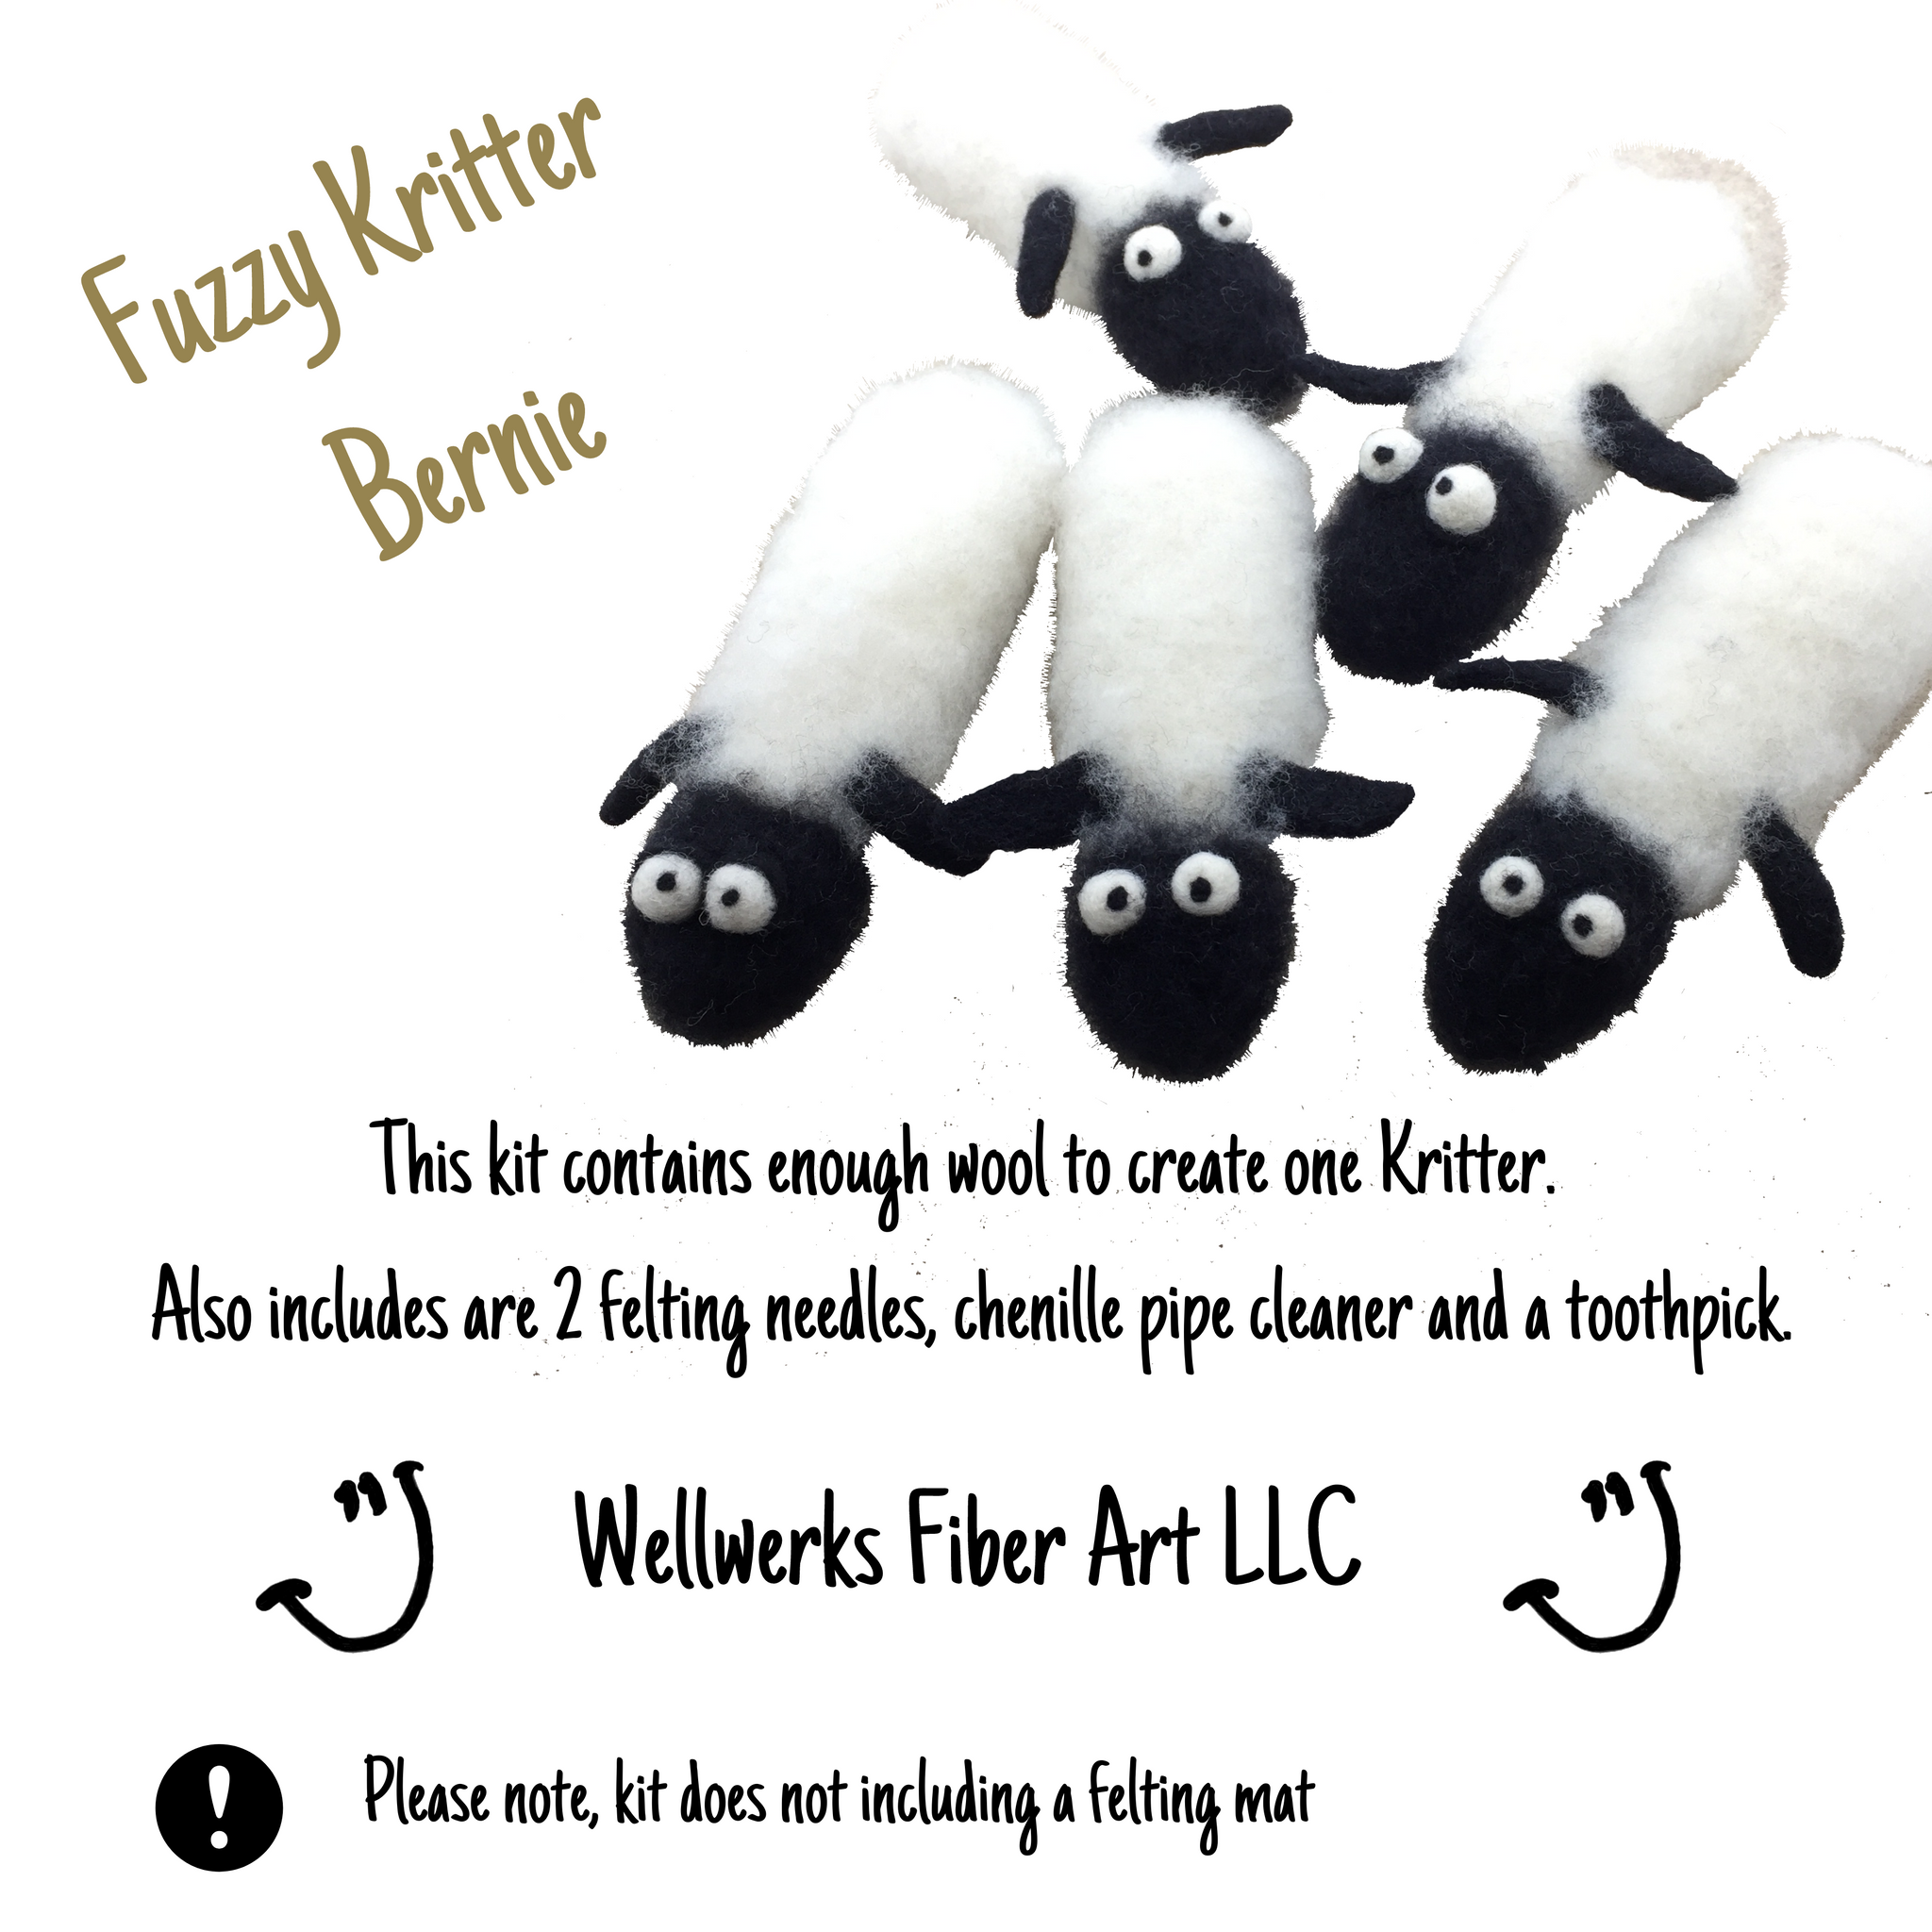 Cover photo of Fuzzy Kritter Bernie Kit. Picture of 5 fuzzy Kritter, list of supplies included.